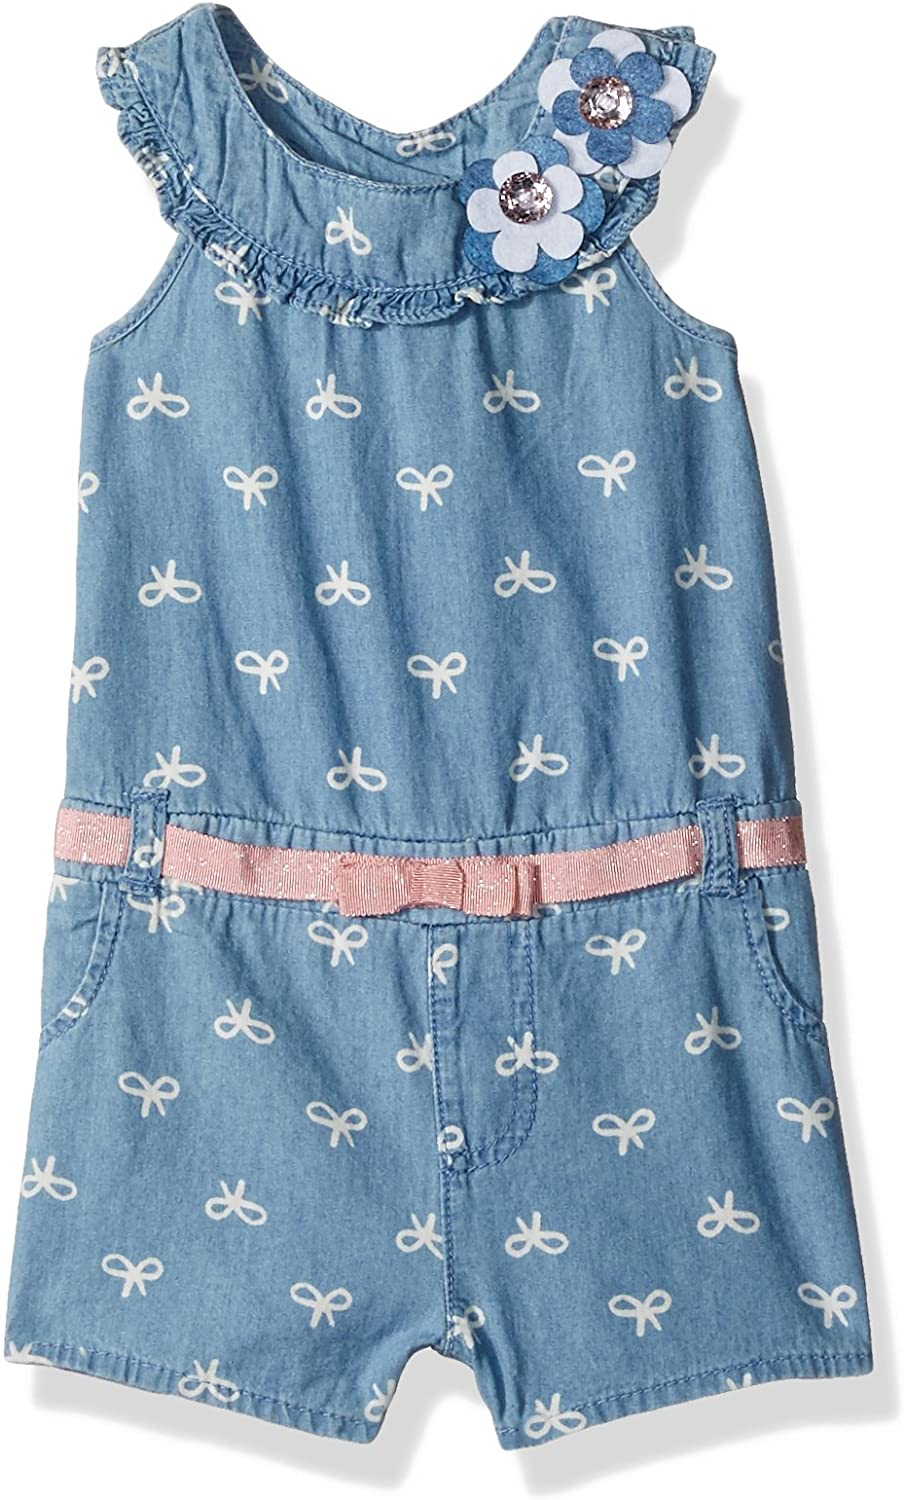 Little Lass Baby Girls' 1 Pc Chambray Romper